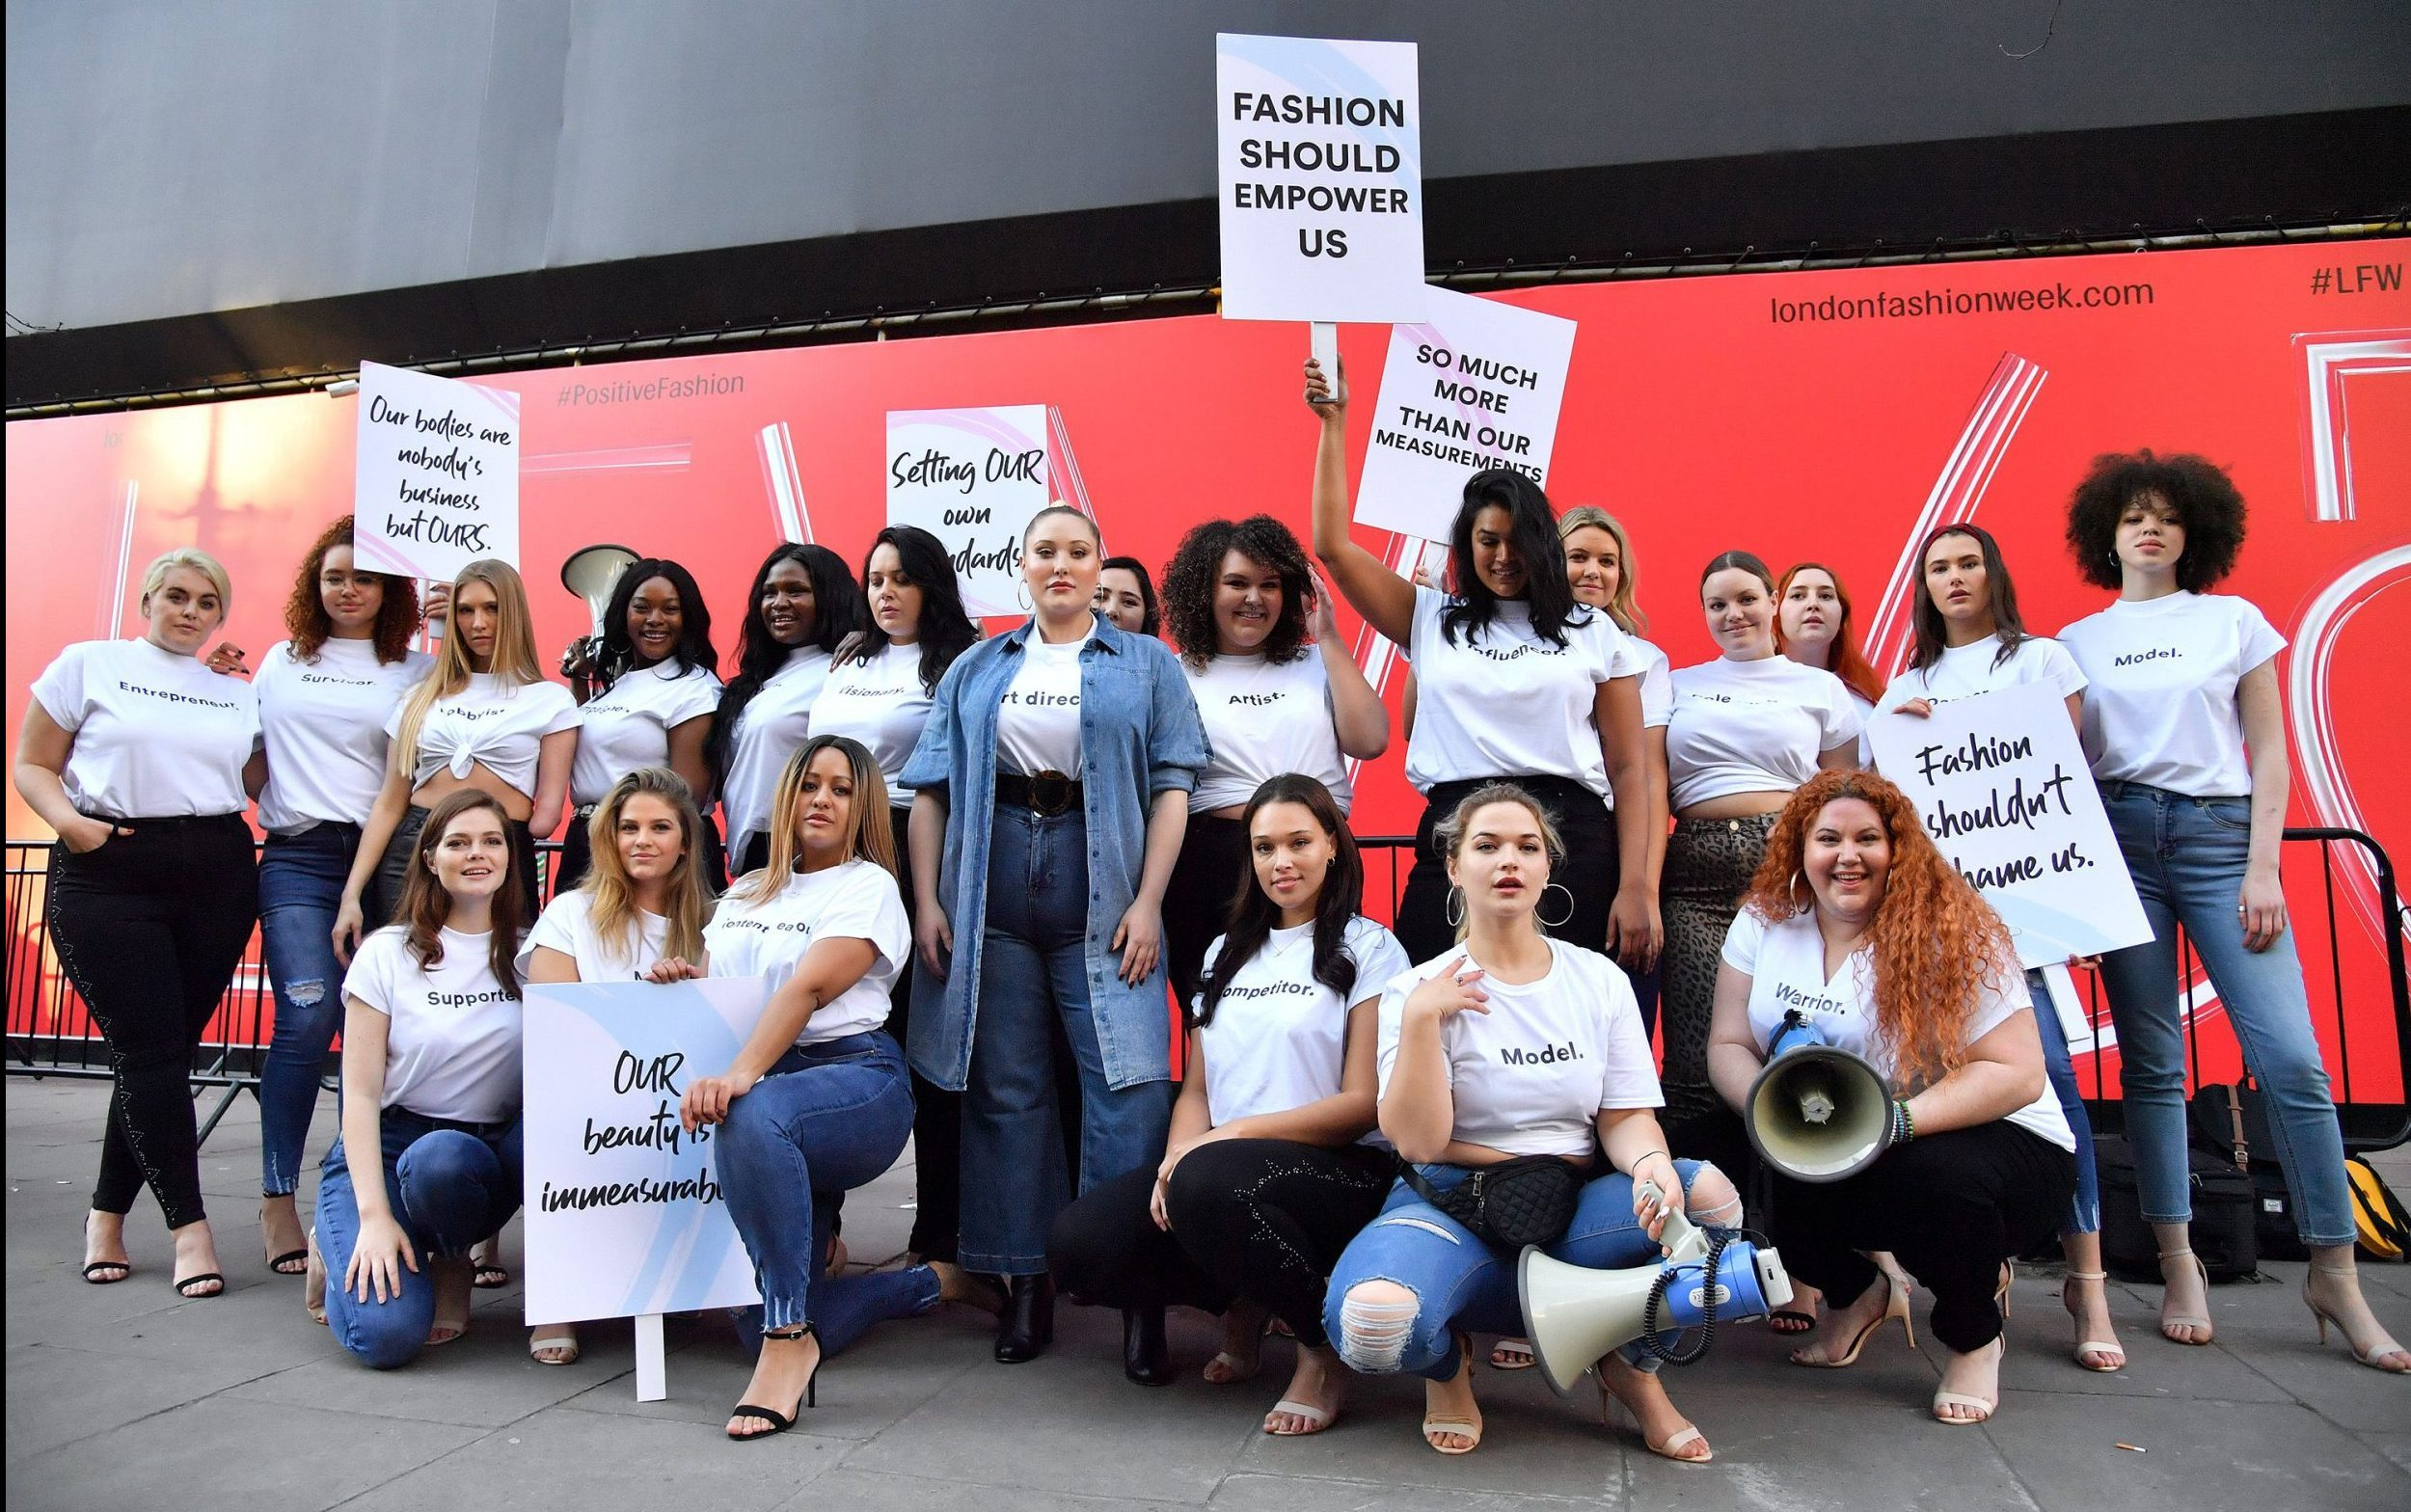 Plus size models call for body inclusivity in protest outside London Fashion Week